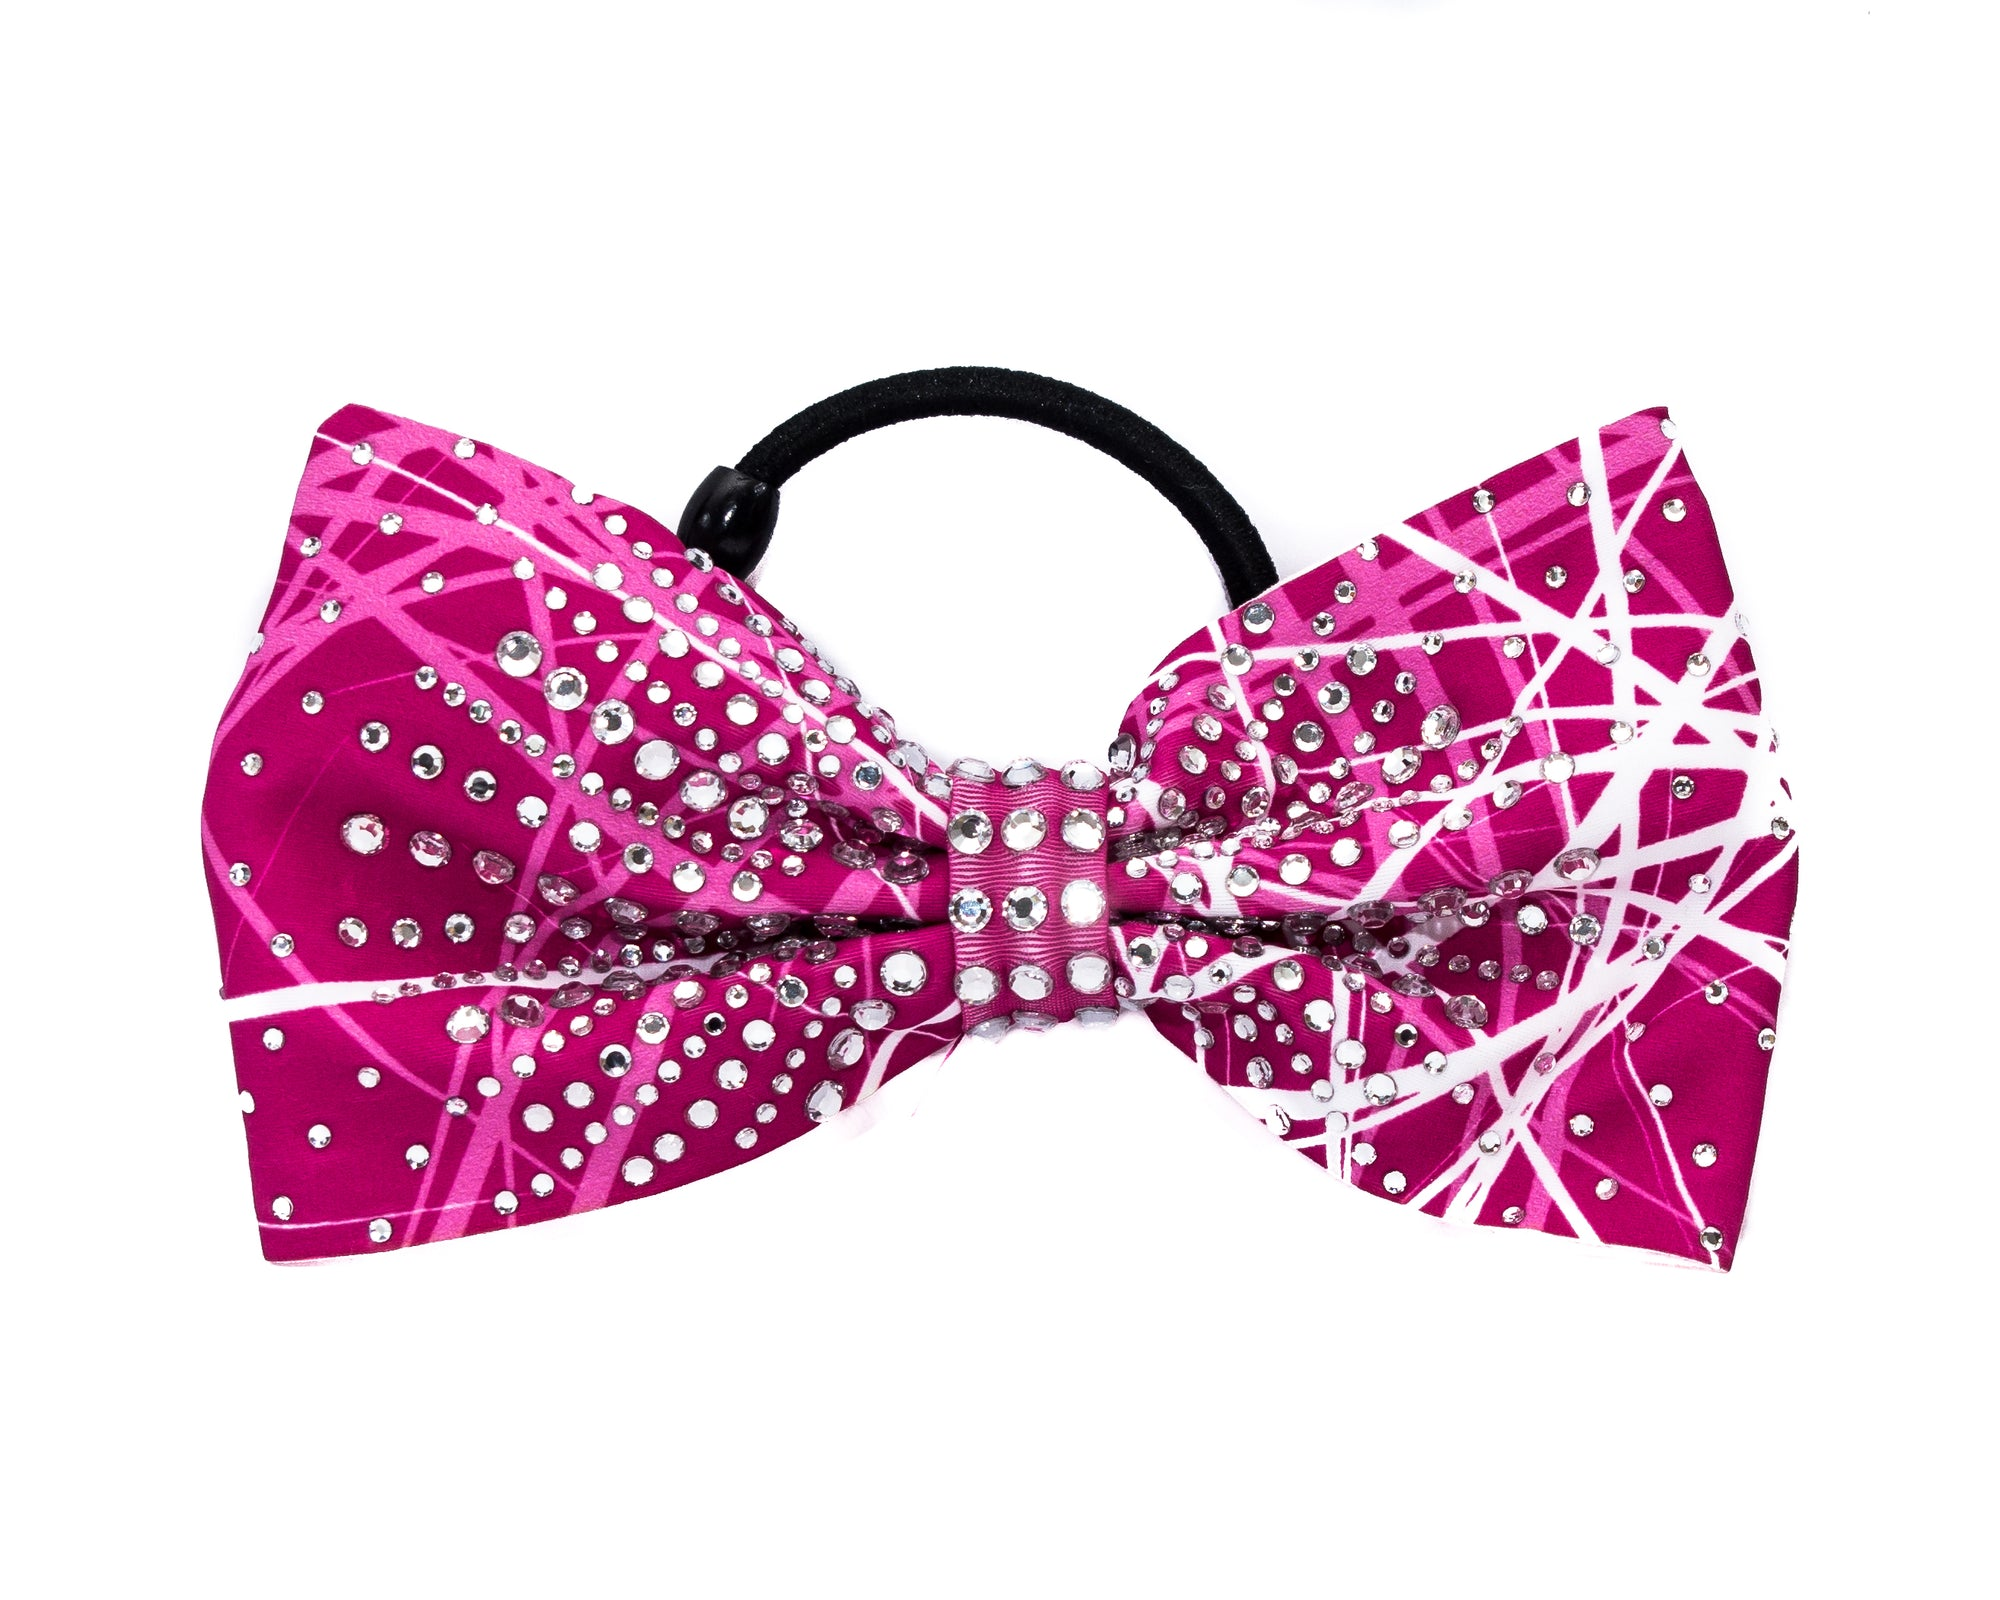 FRACTURED PINK Girls Gymnastics Hair Bow | Equip My Gym